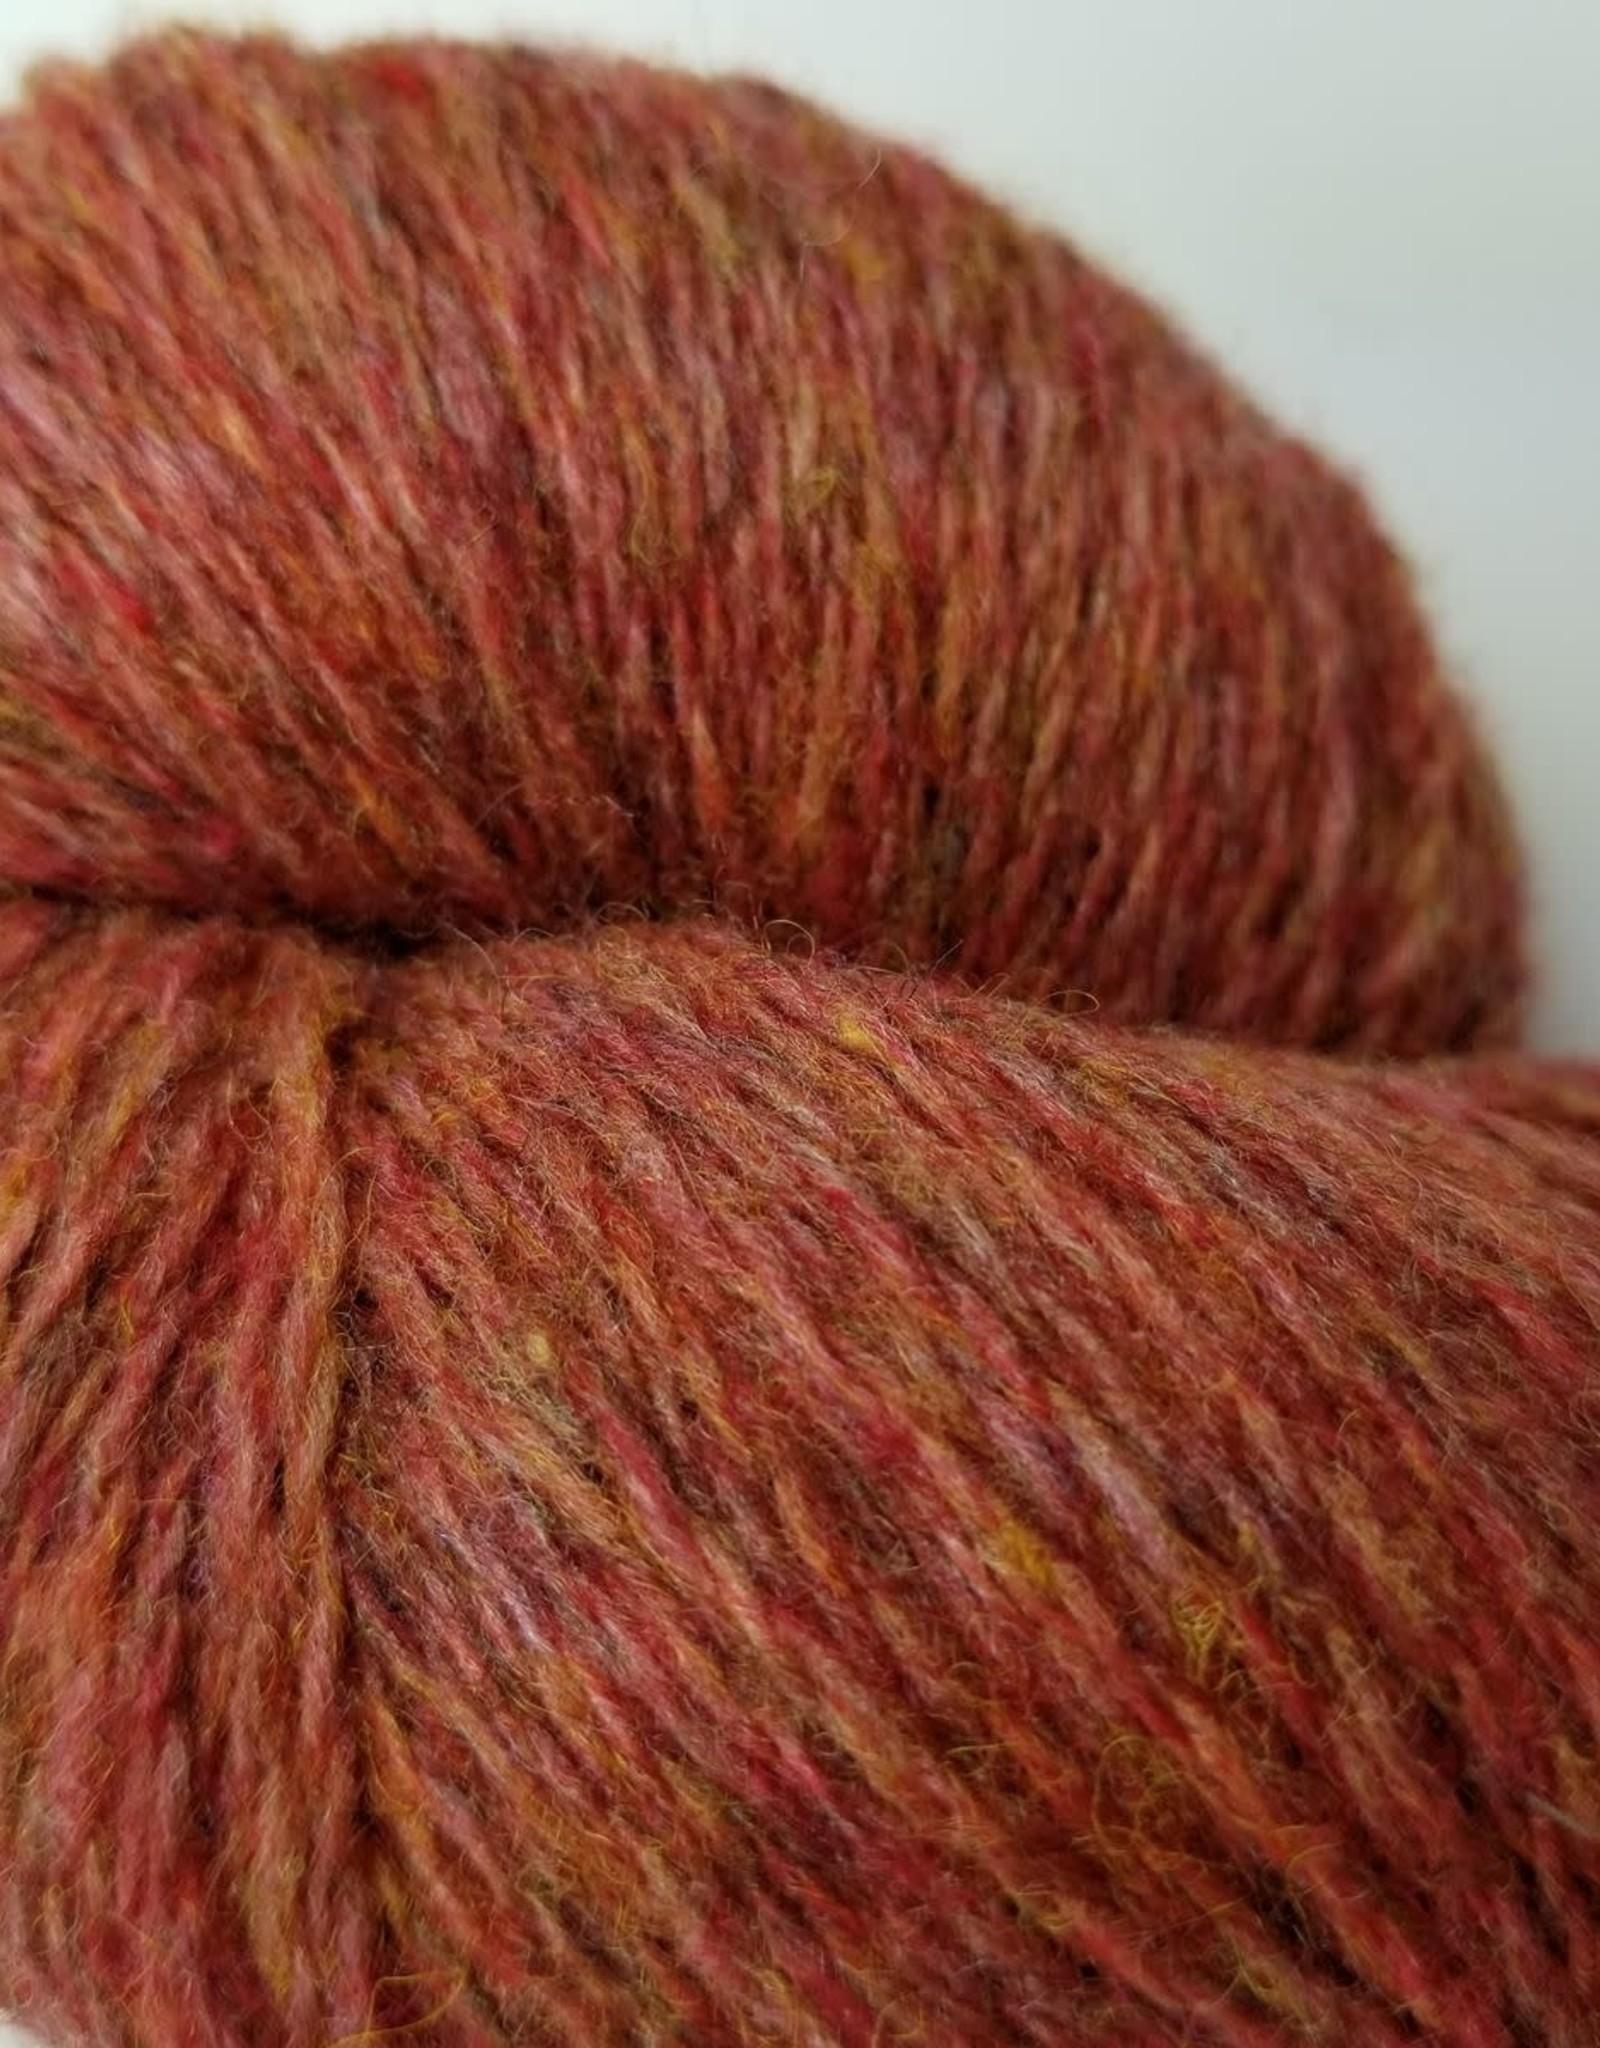 CWM 2-ply Sock 4oz dye with your socks on